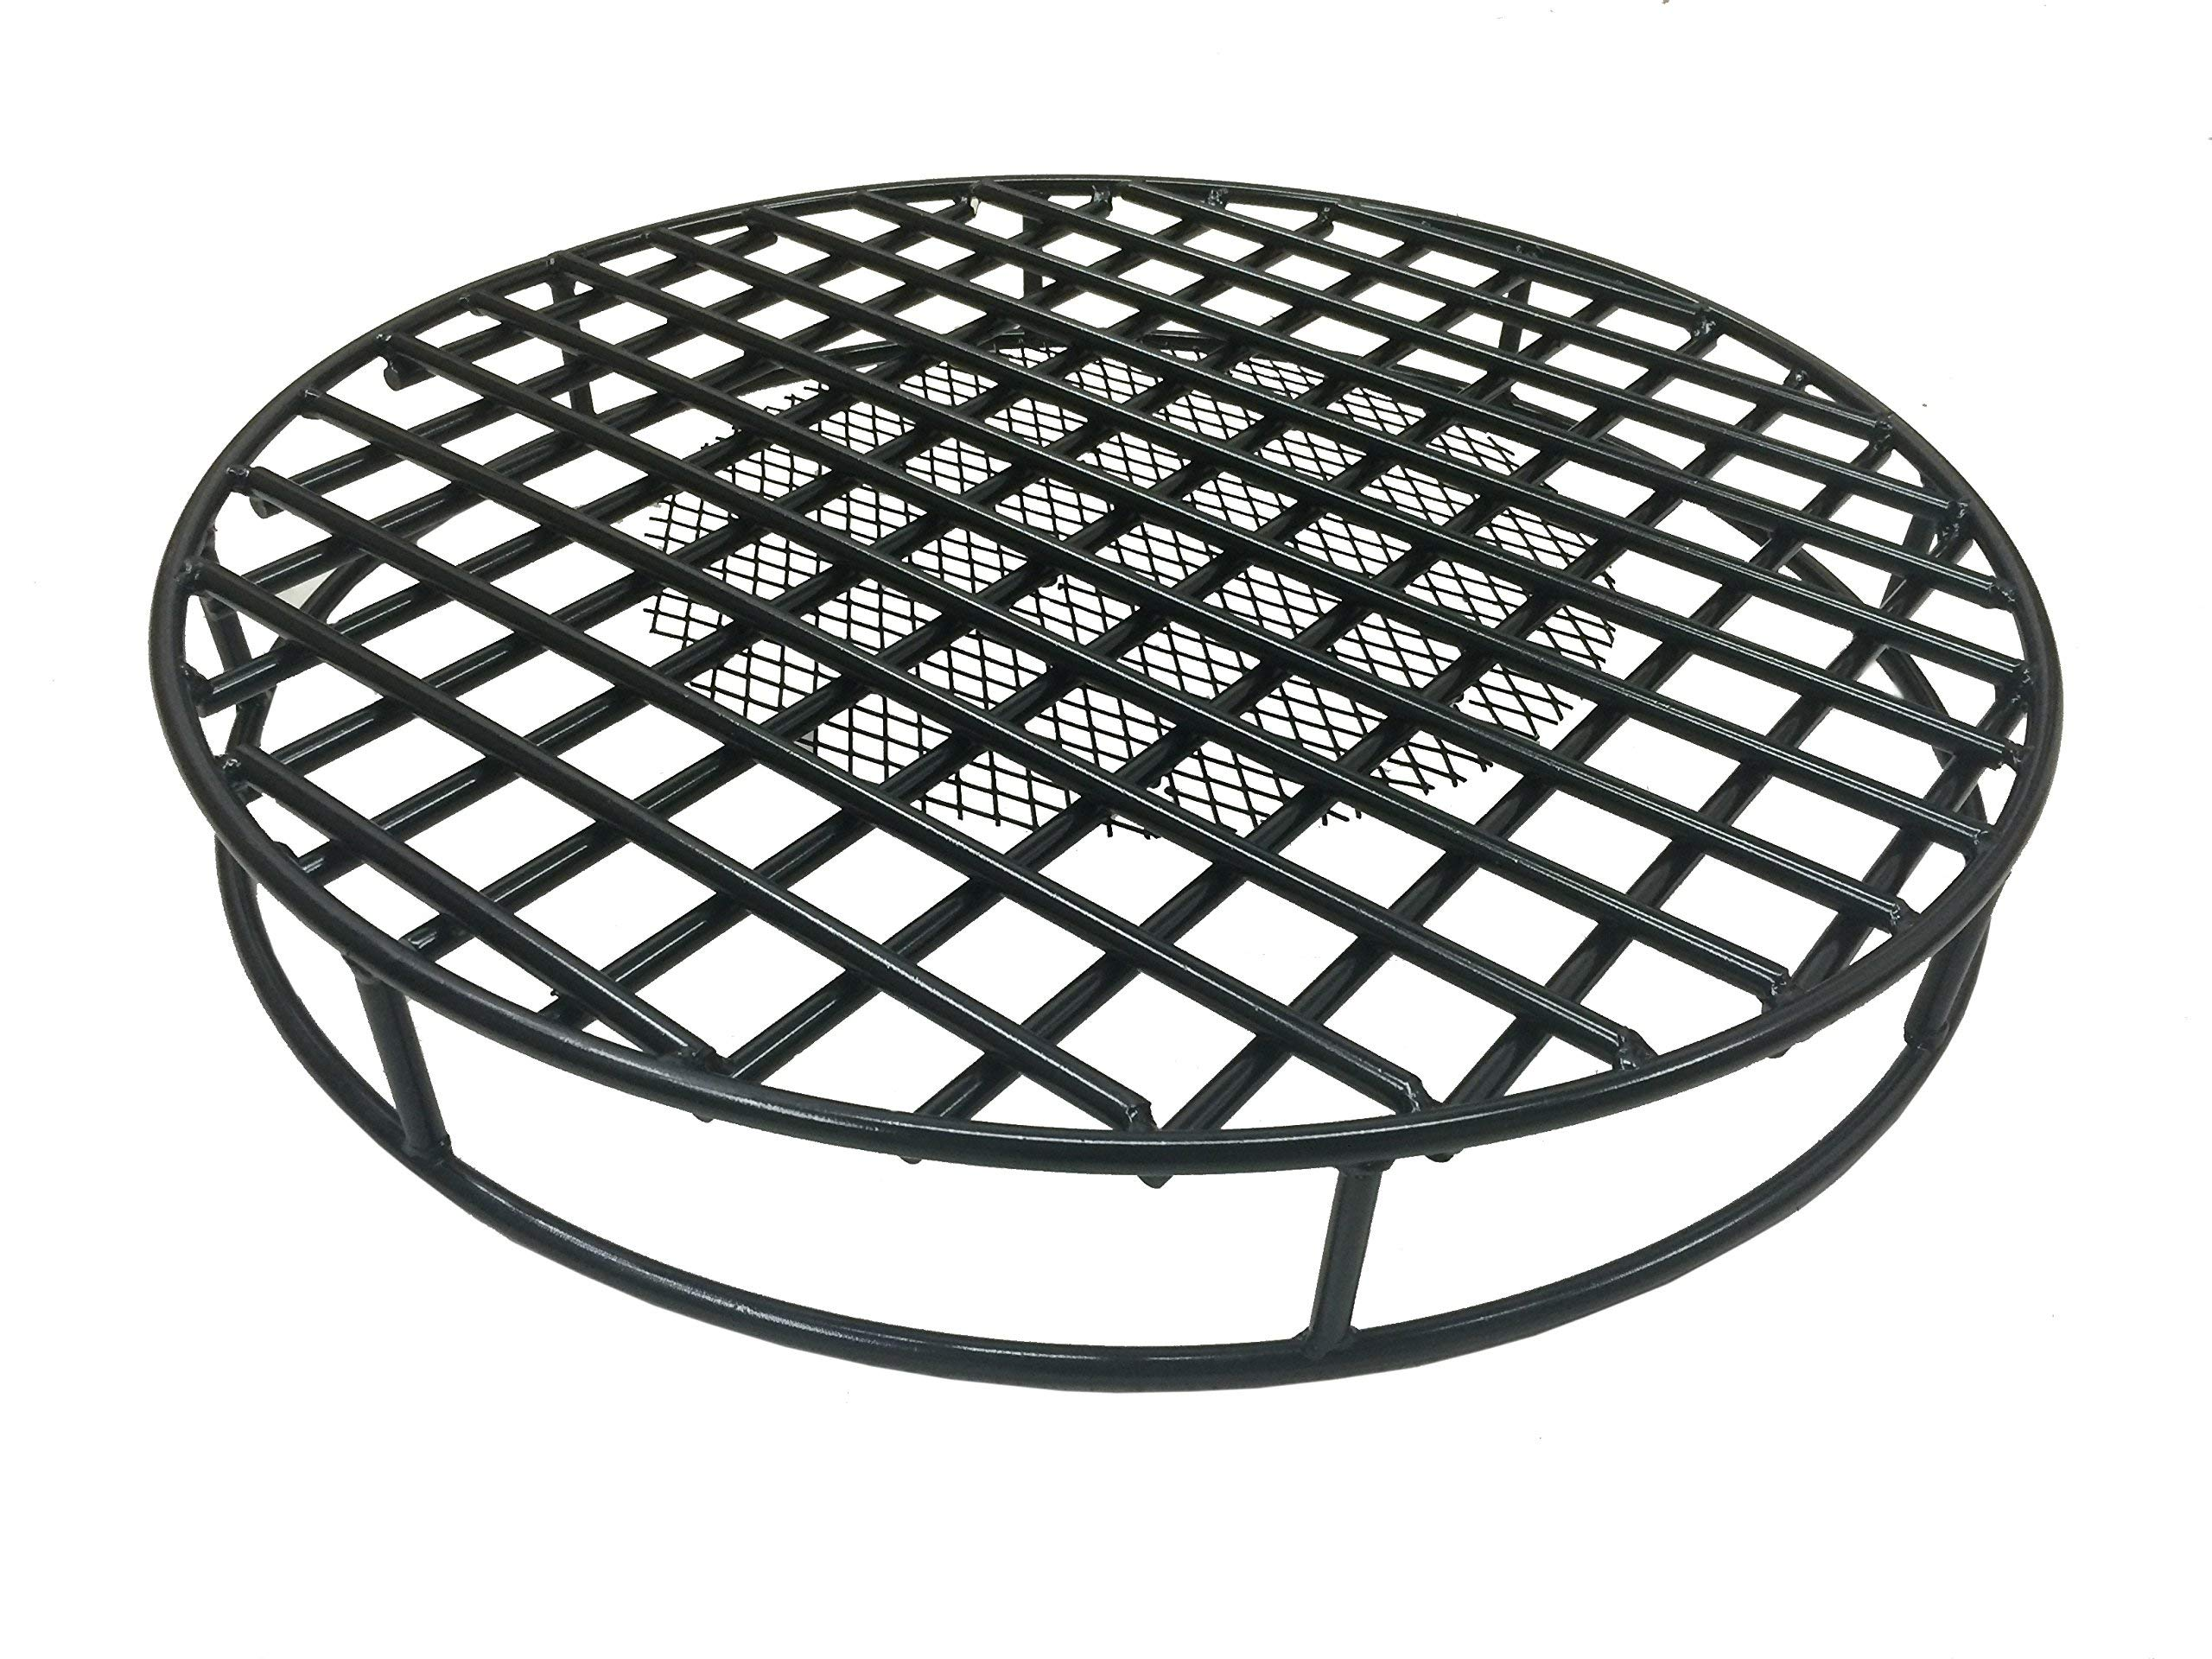 Walden Fire Pit Grate Round 29.5'' Diameter Premium Heavy Duty Steel Grate with Ember Catcher for Outdoor Fire Pits by Walden Backyards